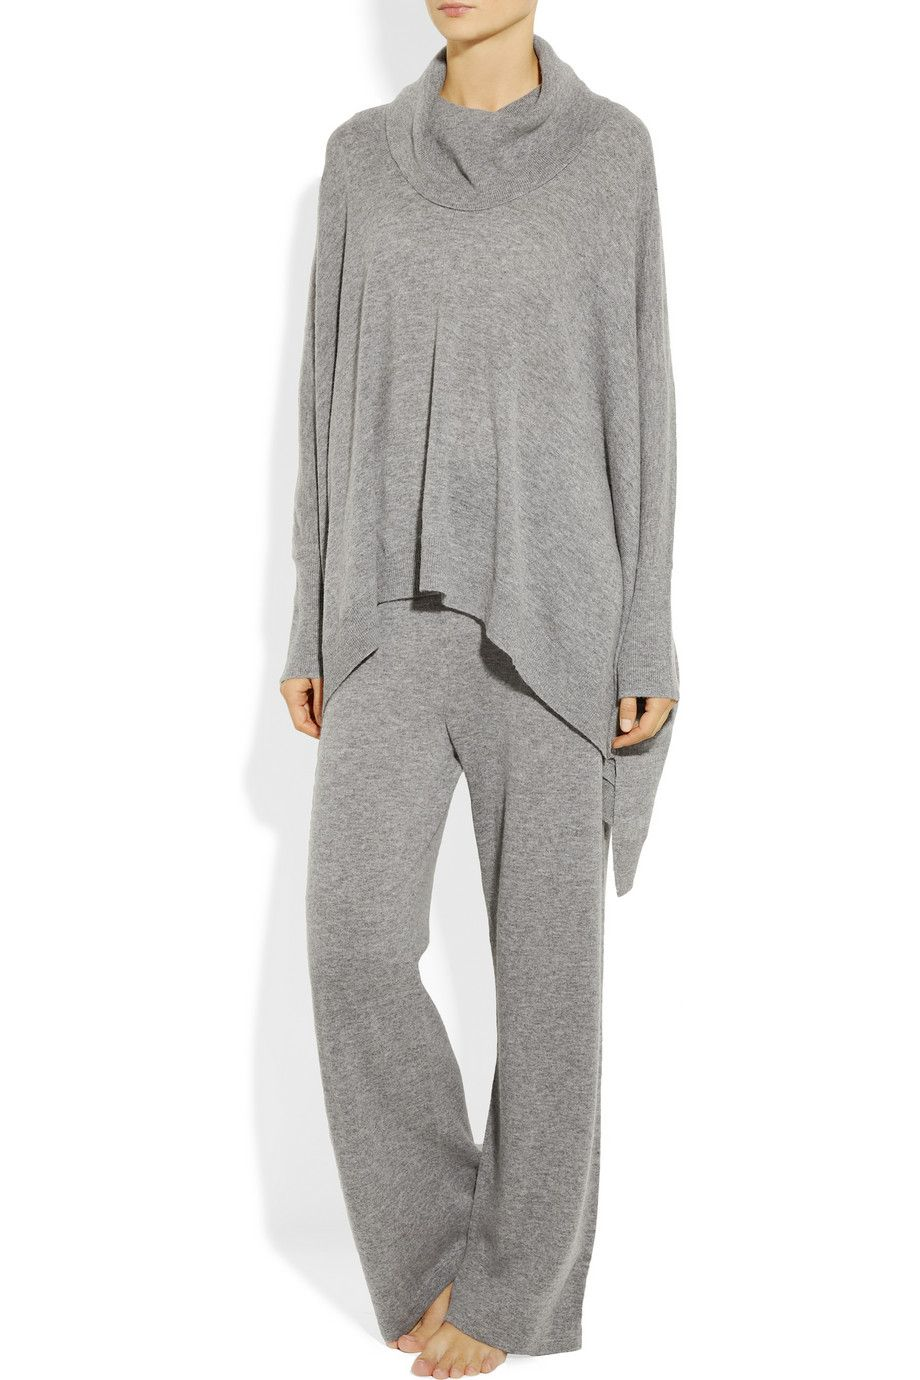 f8ceda46a558 Donna Karan Sleepwear ...If I had this on I might never get dressed ...